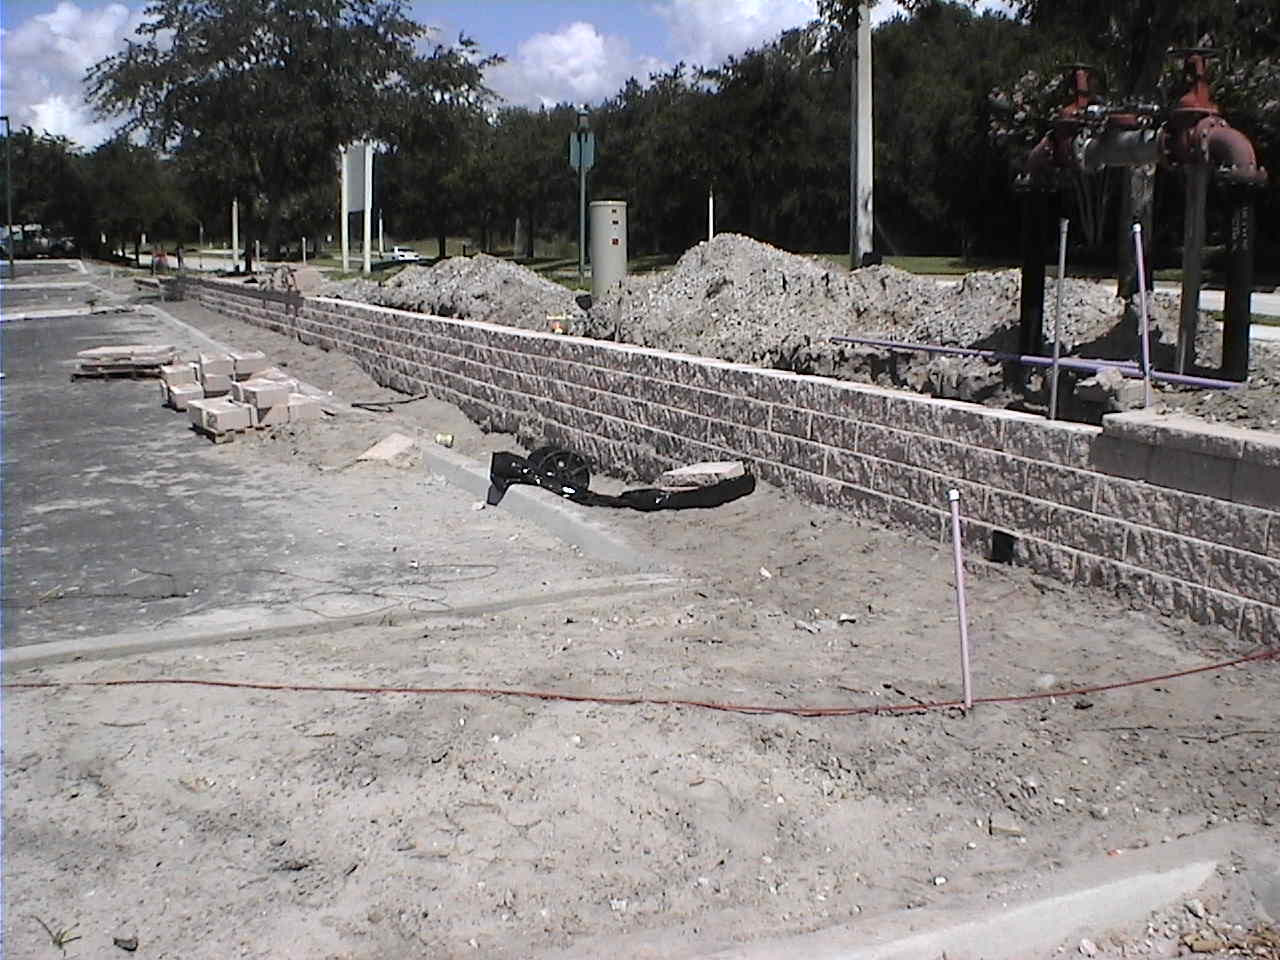 retaining wall construction.JPG